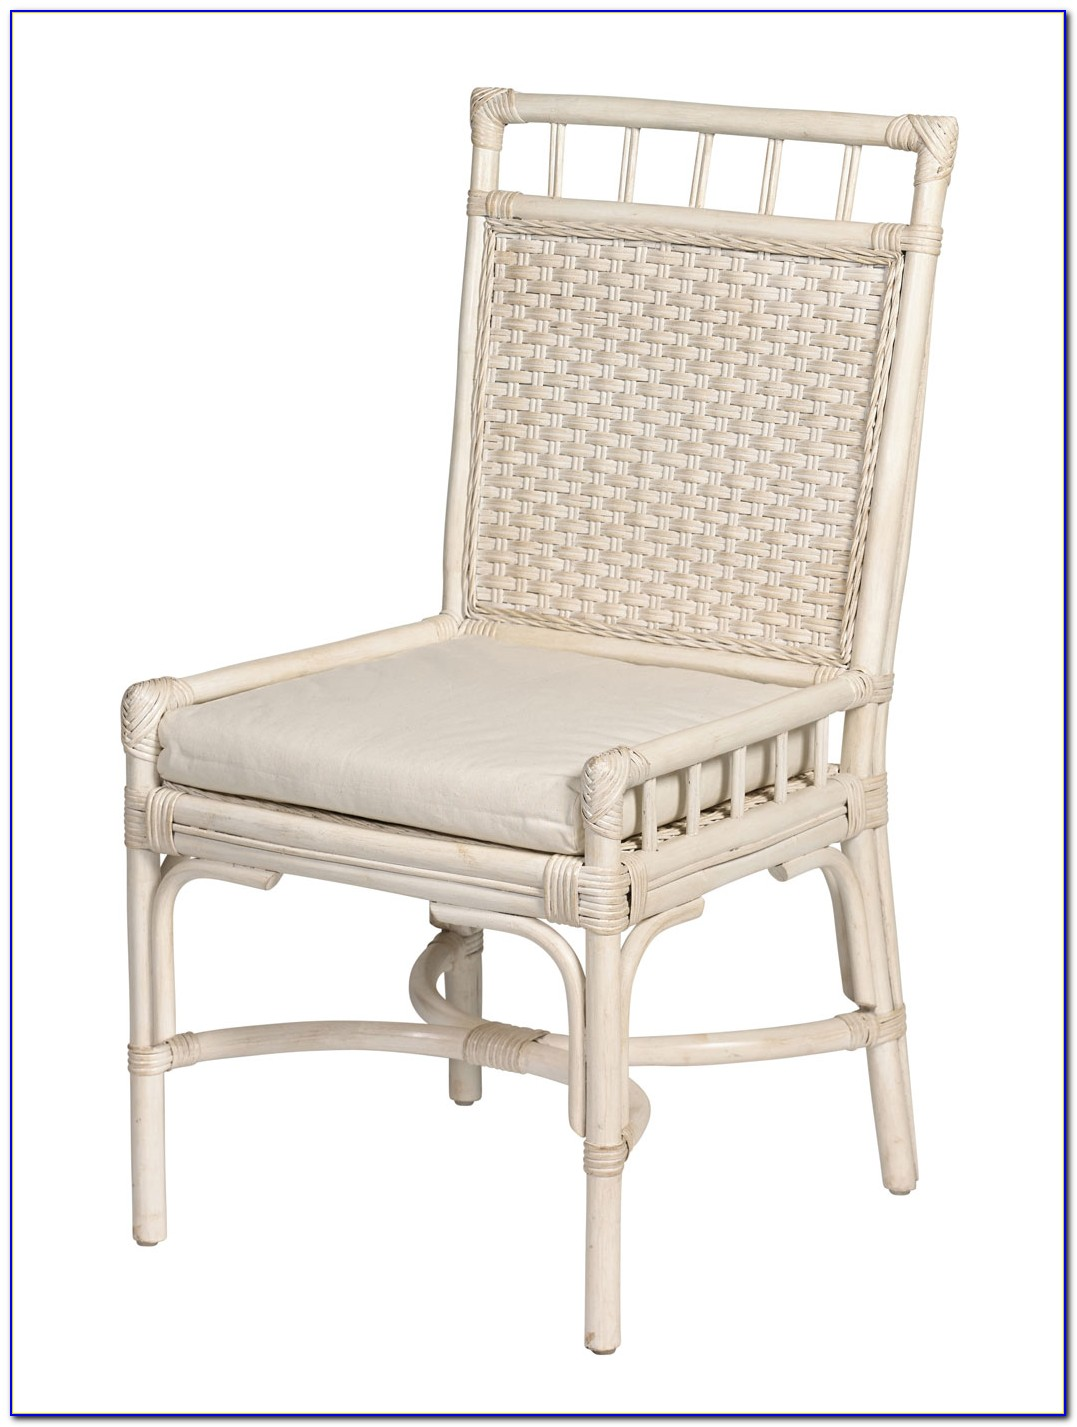 Pottery Barn Rattan Chair Wicker Desk And Chair